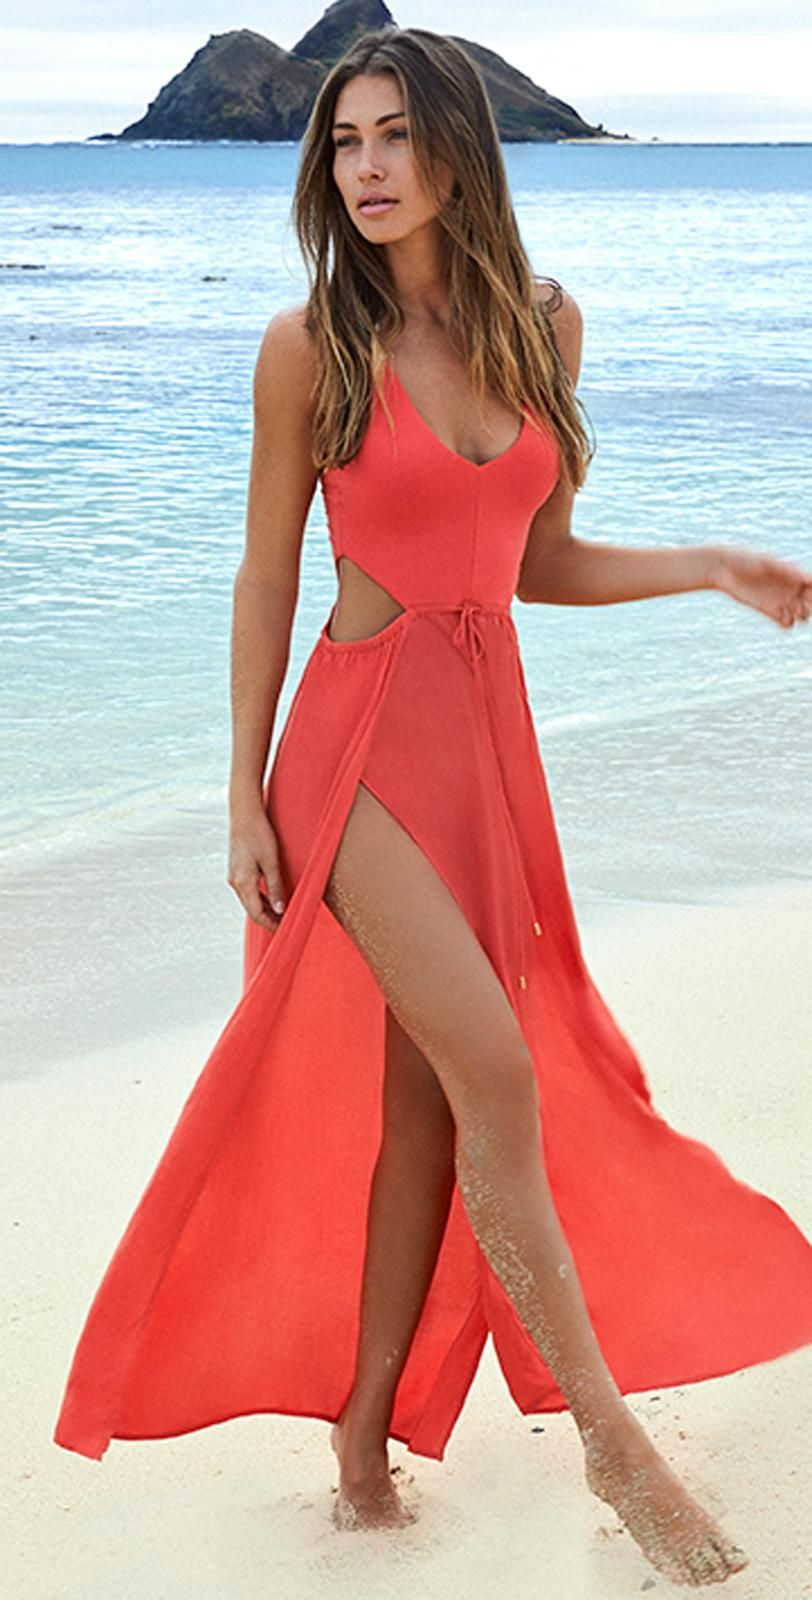 90c57de6eb8 Wonderwall Cutout Red Coral Maxi Dress. Available at koogal.com So  beautiful  love